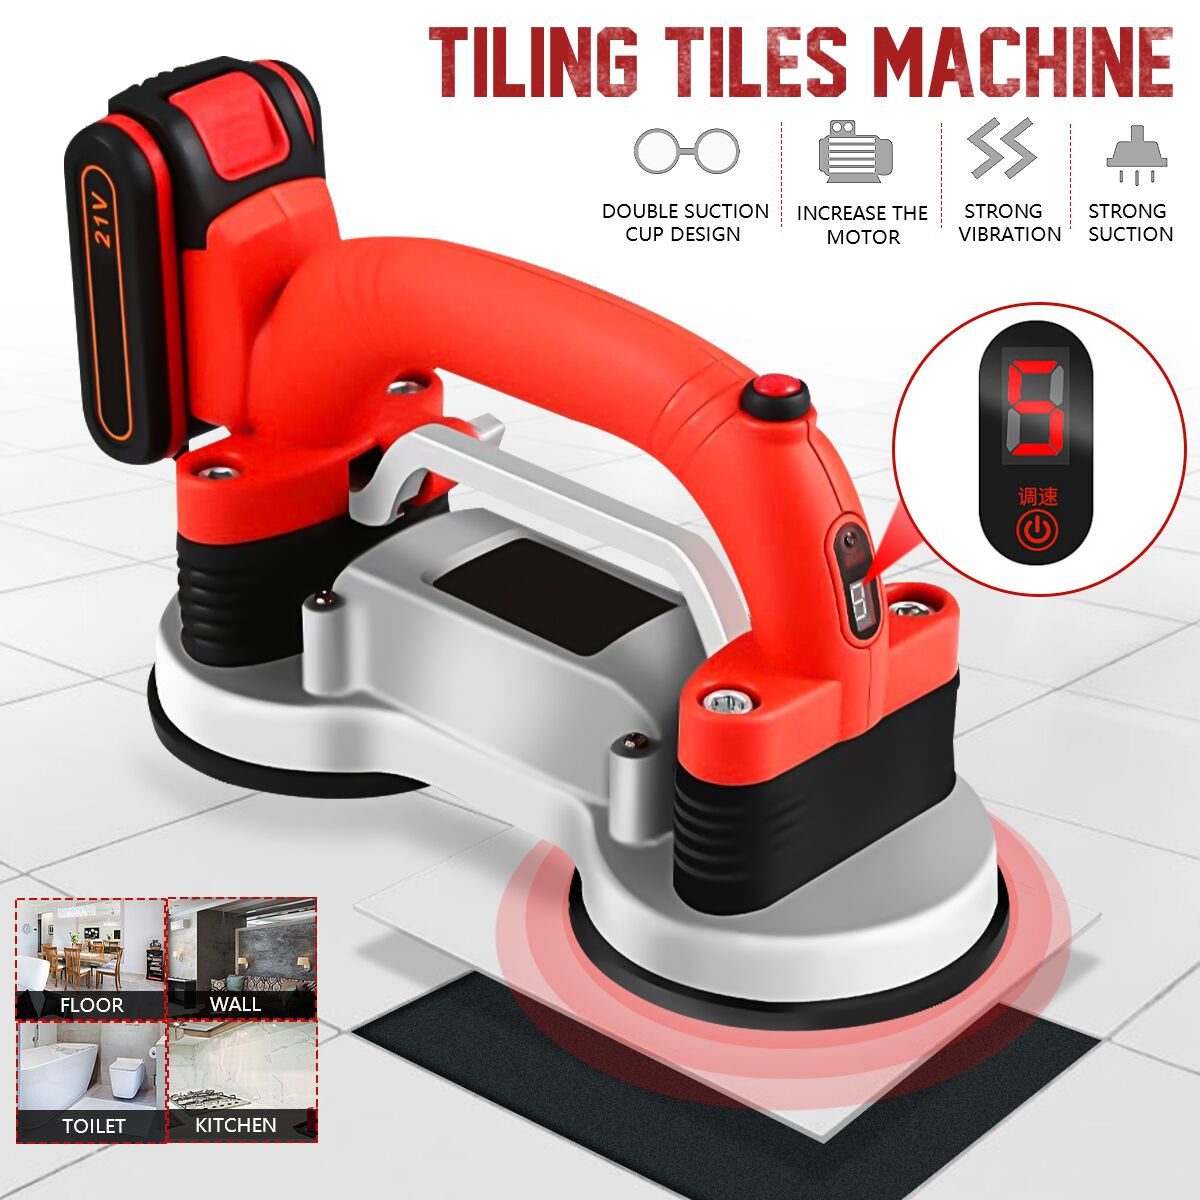 Tiling Tiles Machine 60-120mm Tiles Vibrator Suction Cup Adjustable Protable Automatic Floor Vibrator Leveling Tool With Battery